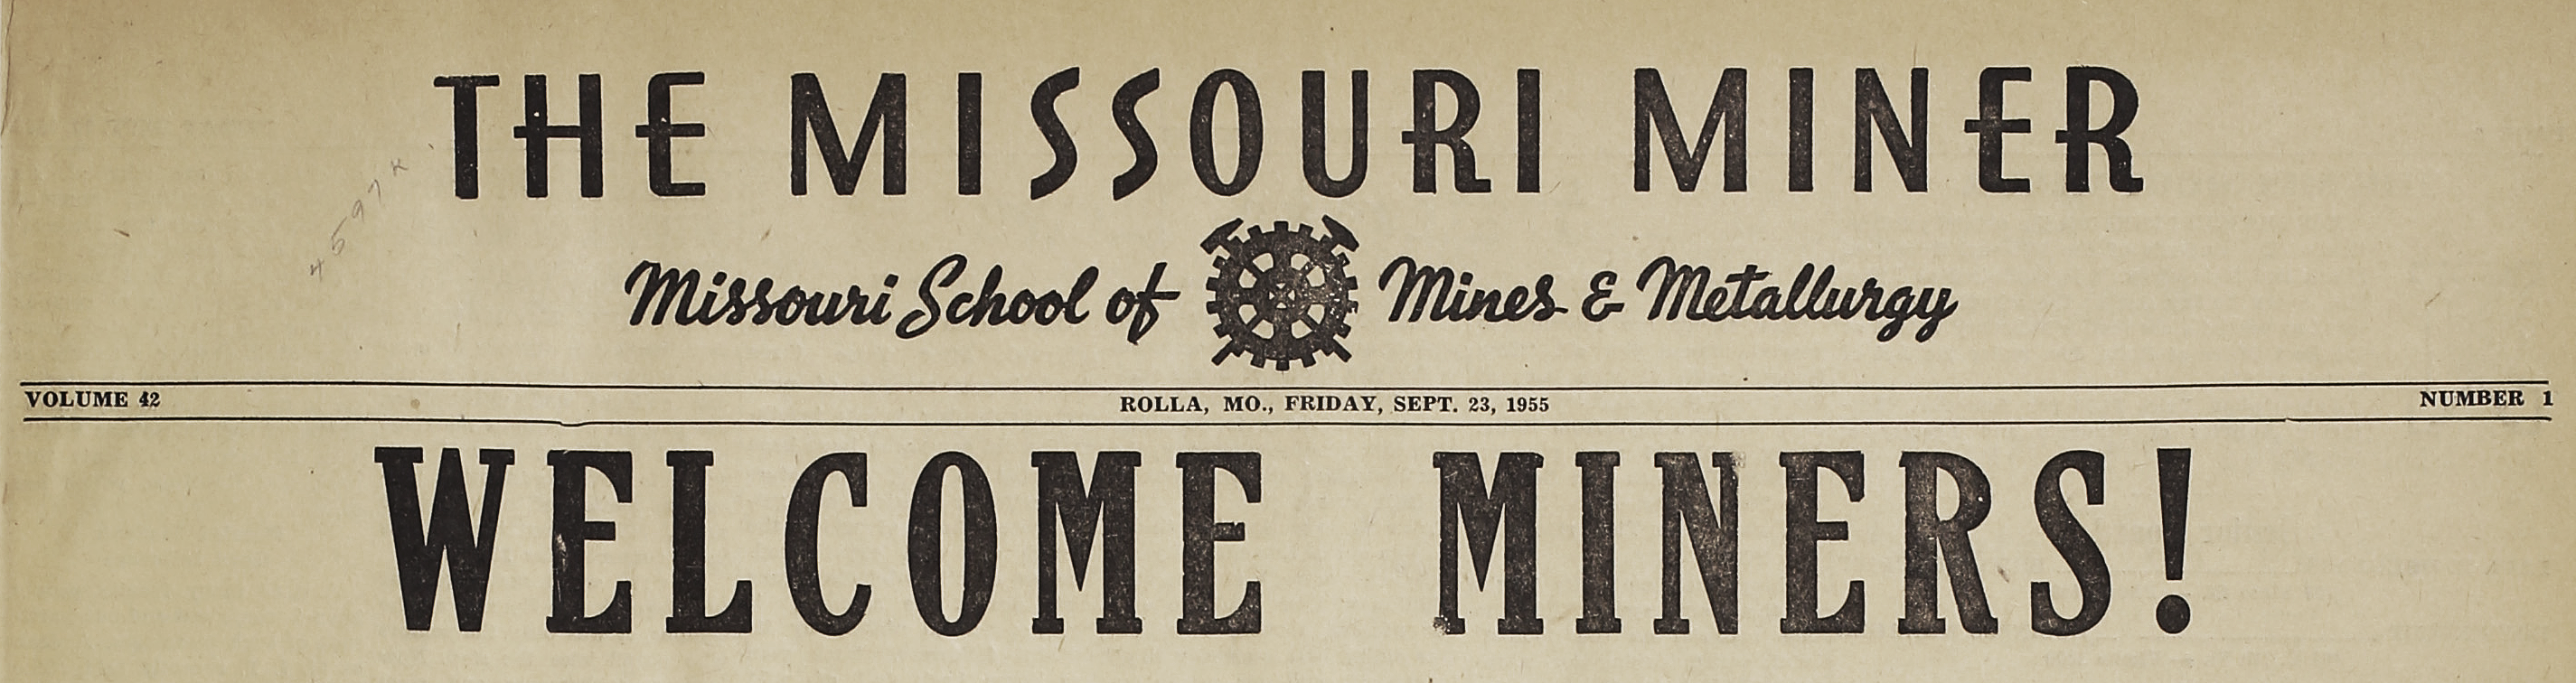 The Missouri Miner Newspaper